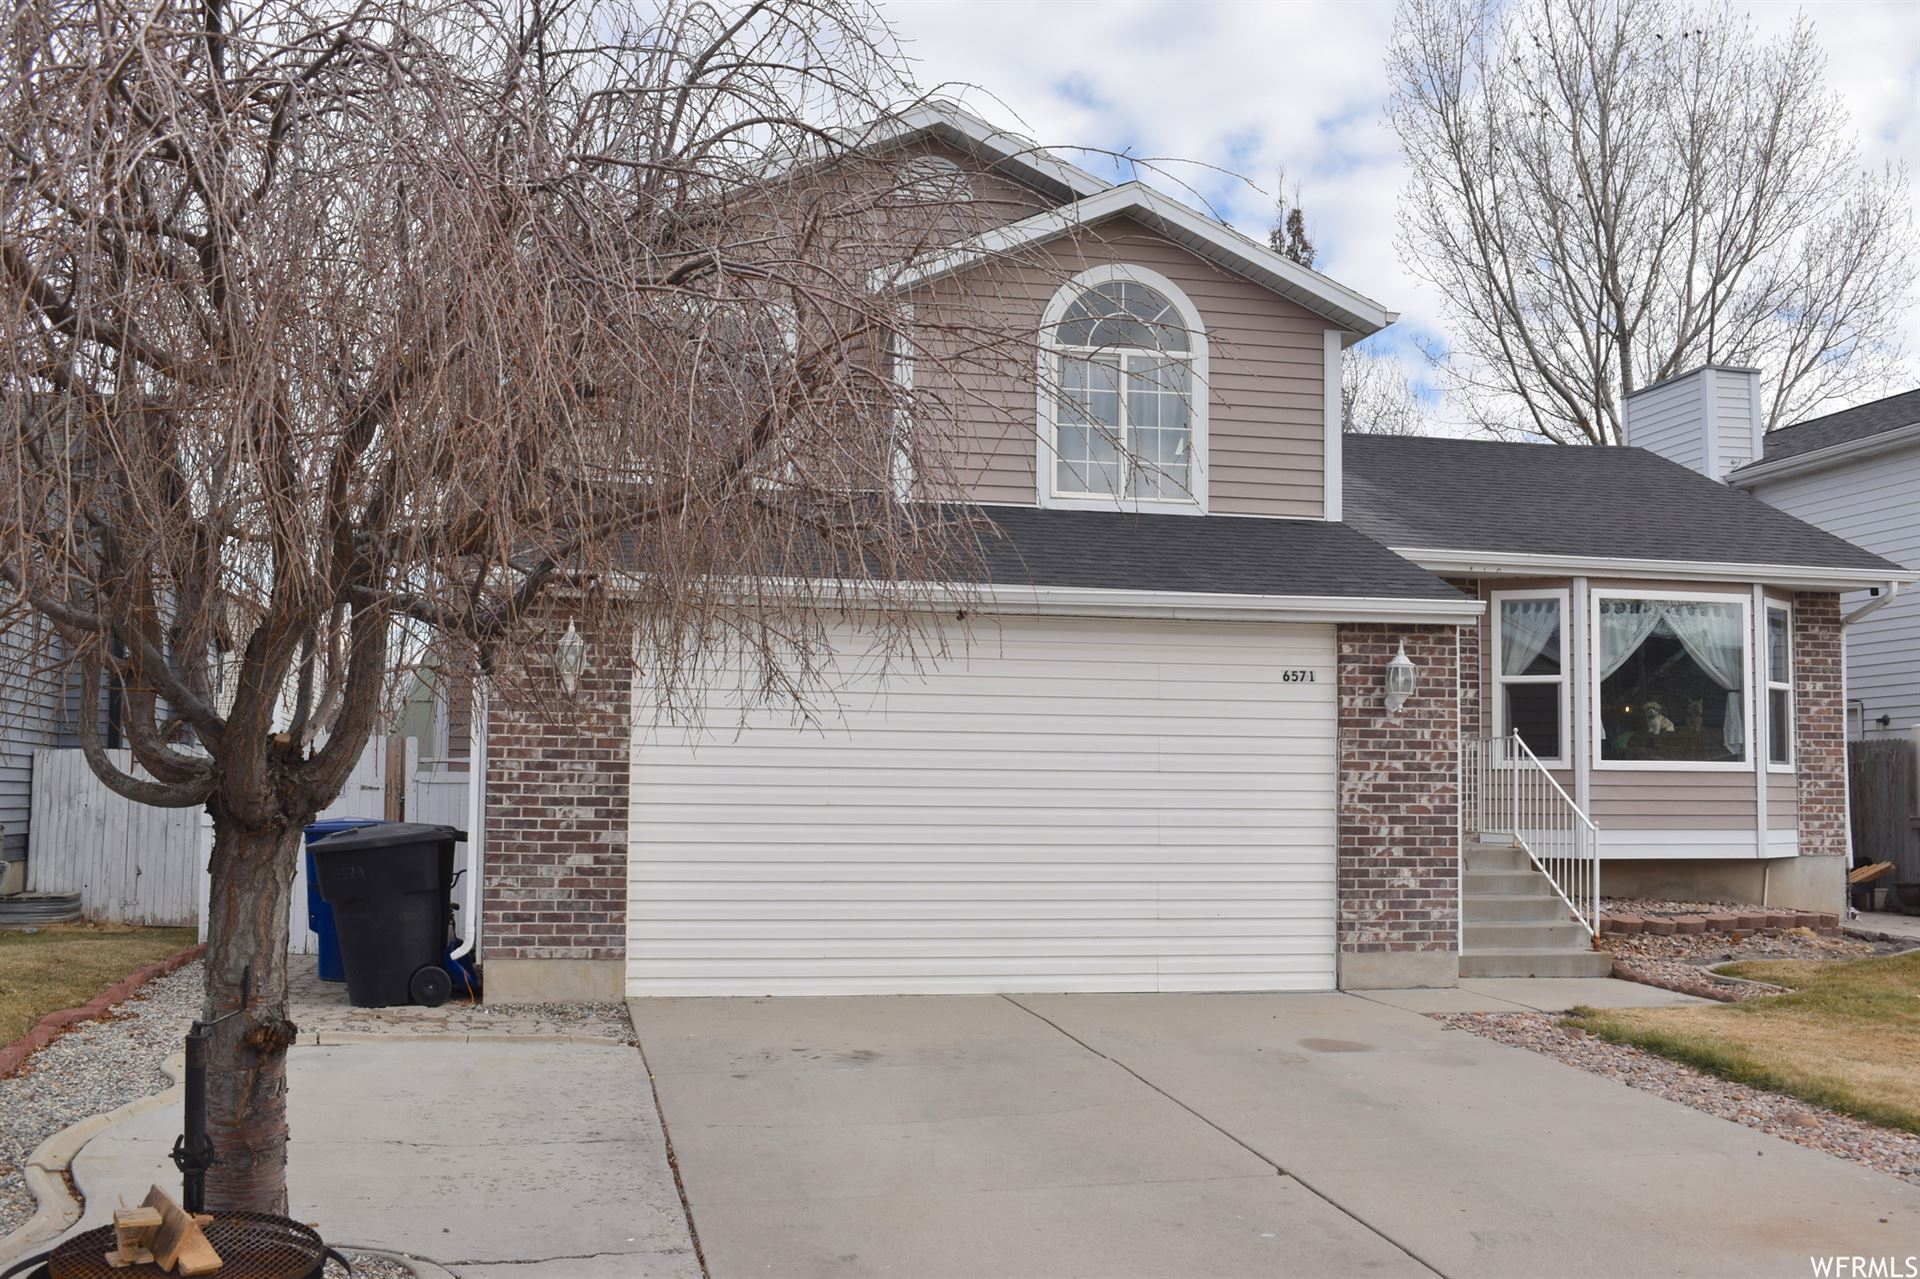 Photo of 6571 S CASTLEFORD DR, Taylorsville, UT 84129 (MLS # 1720426)